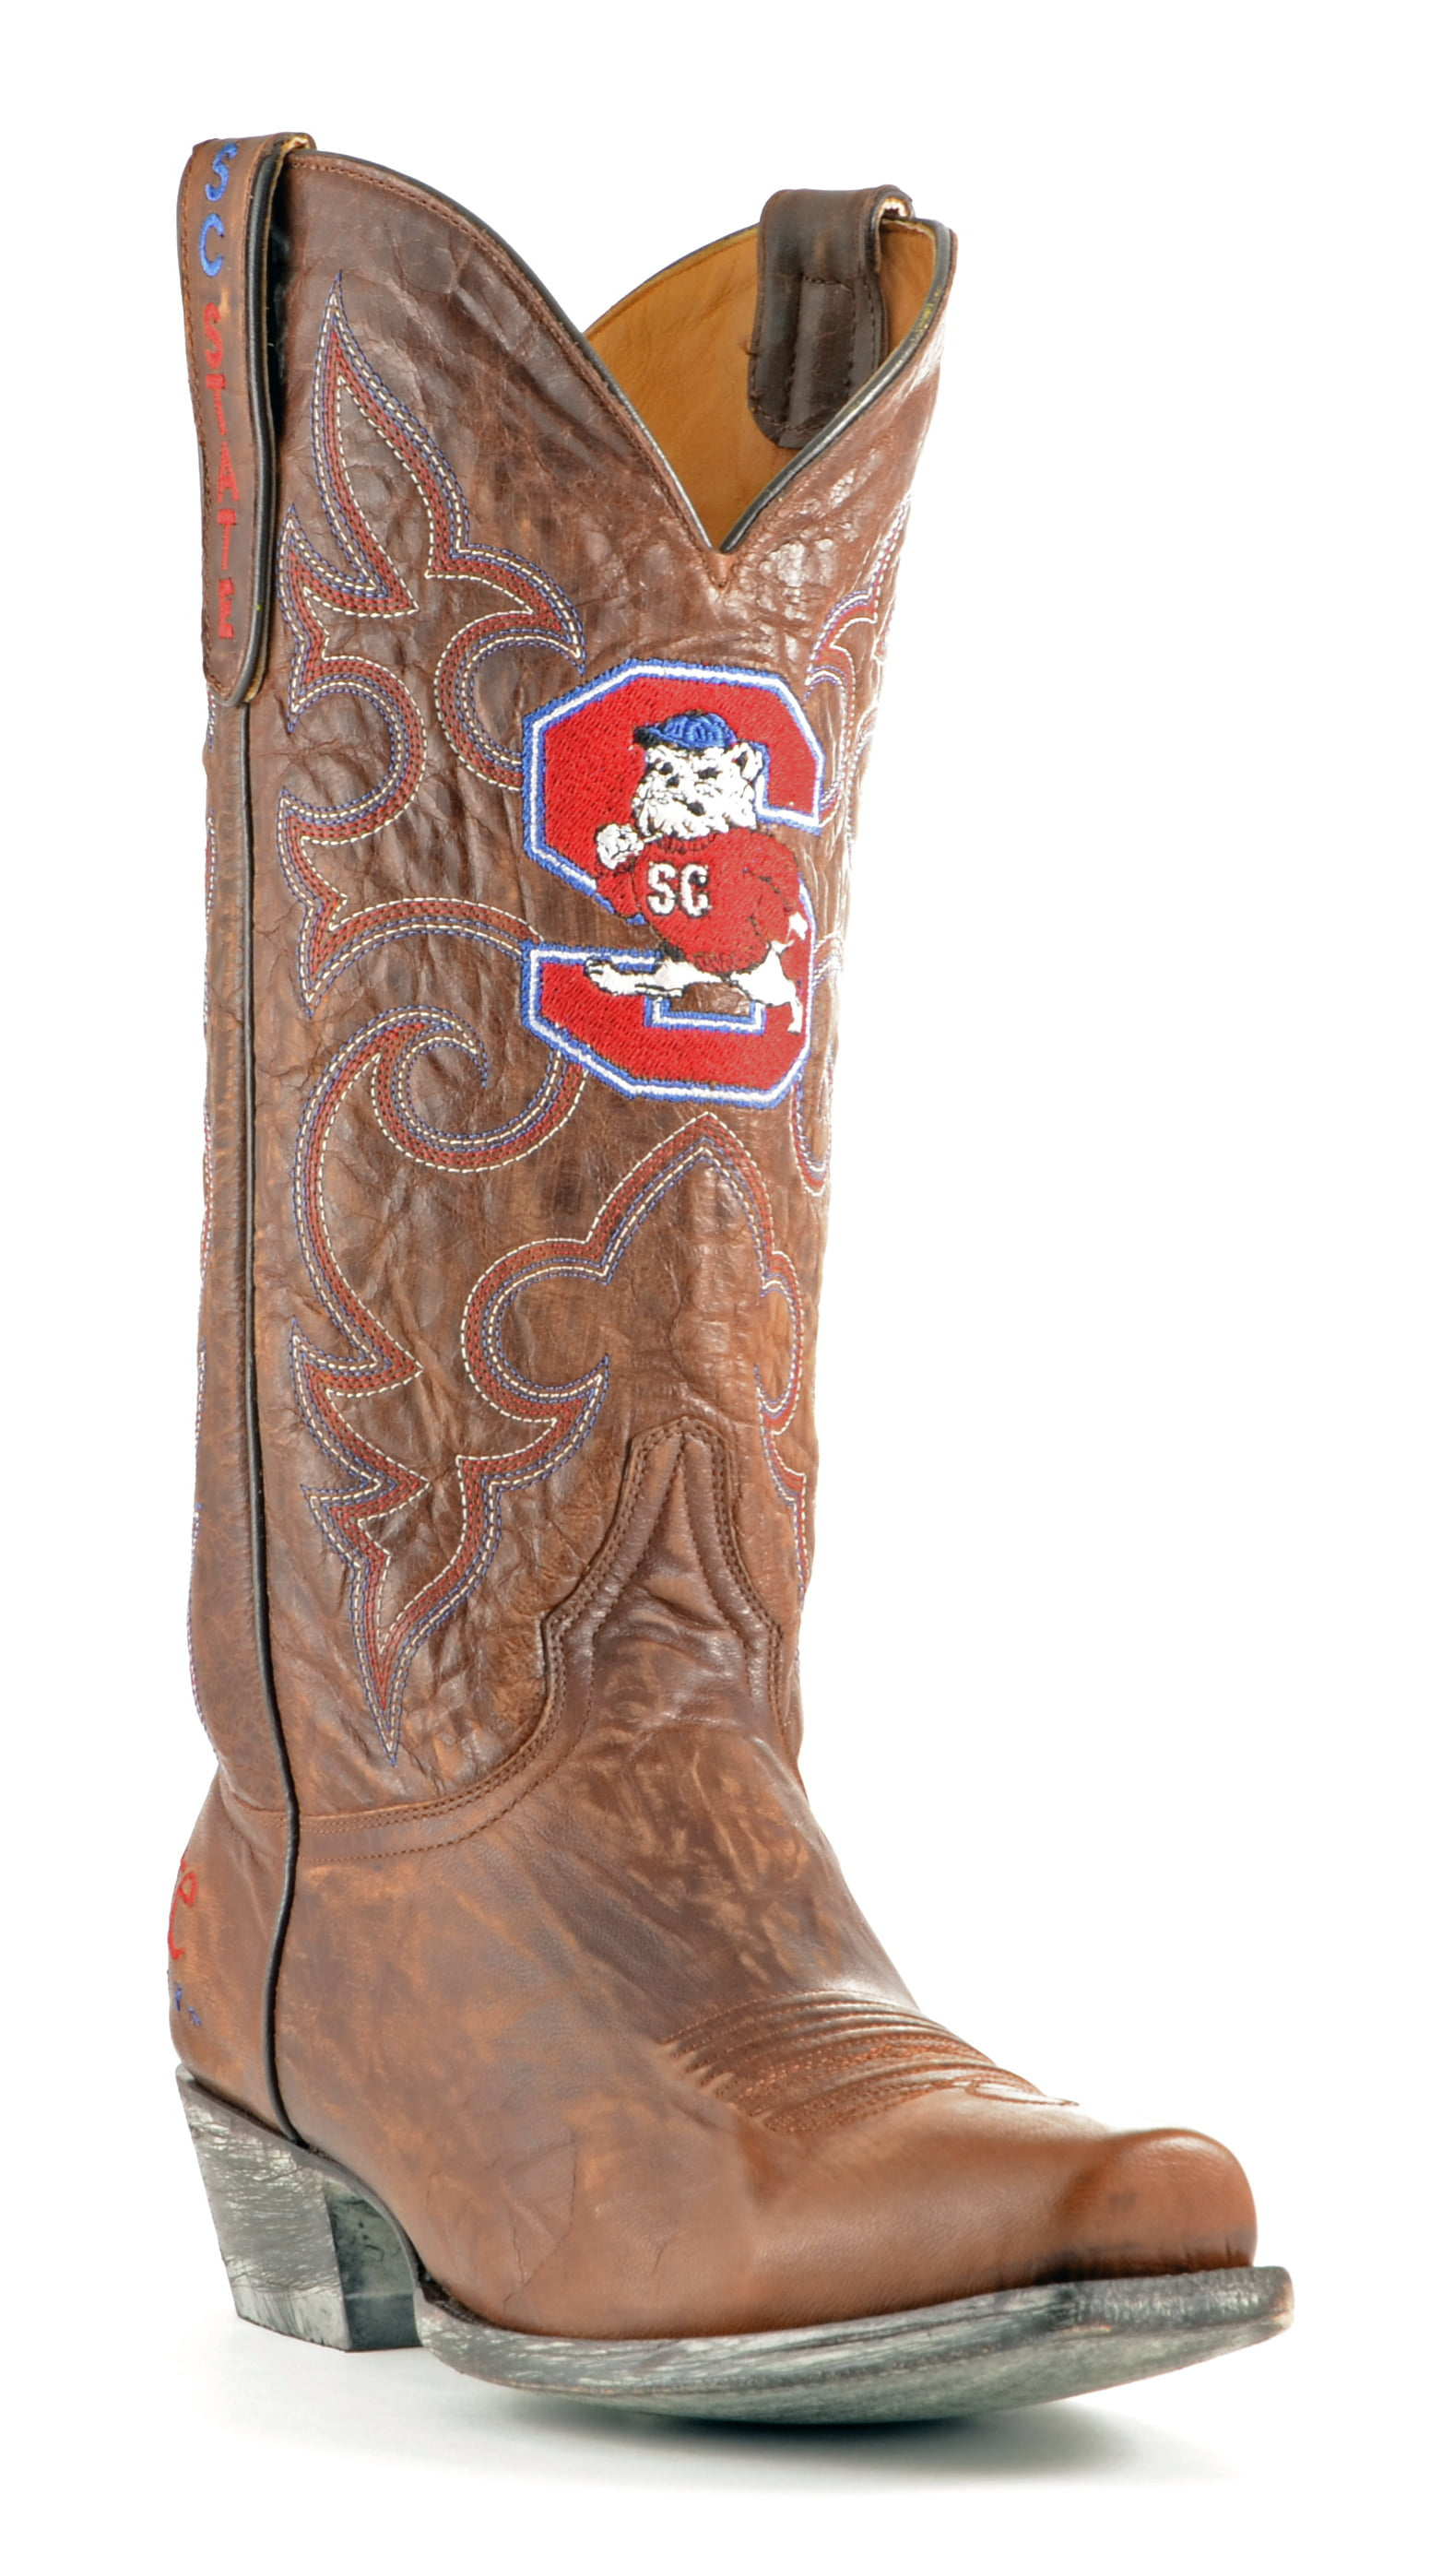 Gameday Boots Leather S Carolina St Board Room Cowboy Boots by GameDay Boots